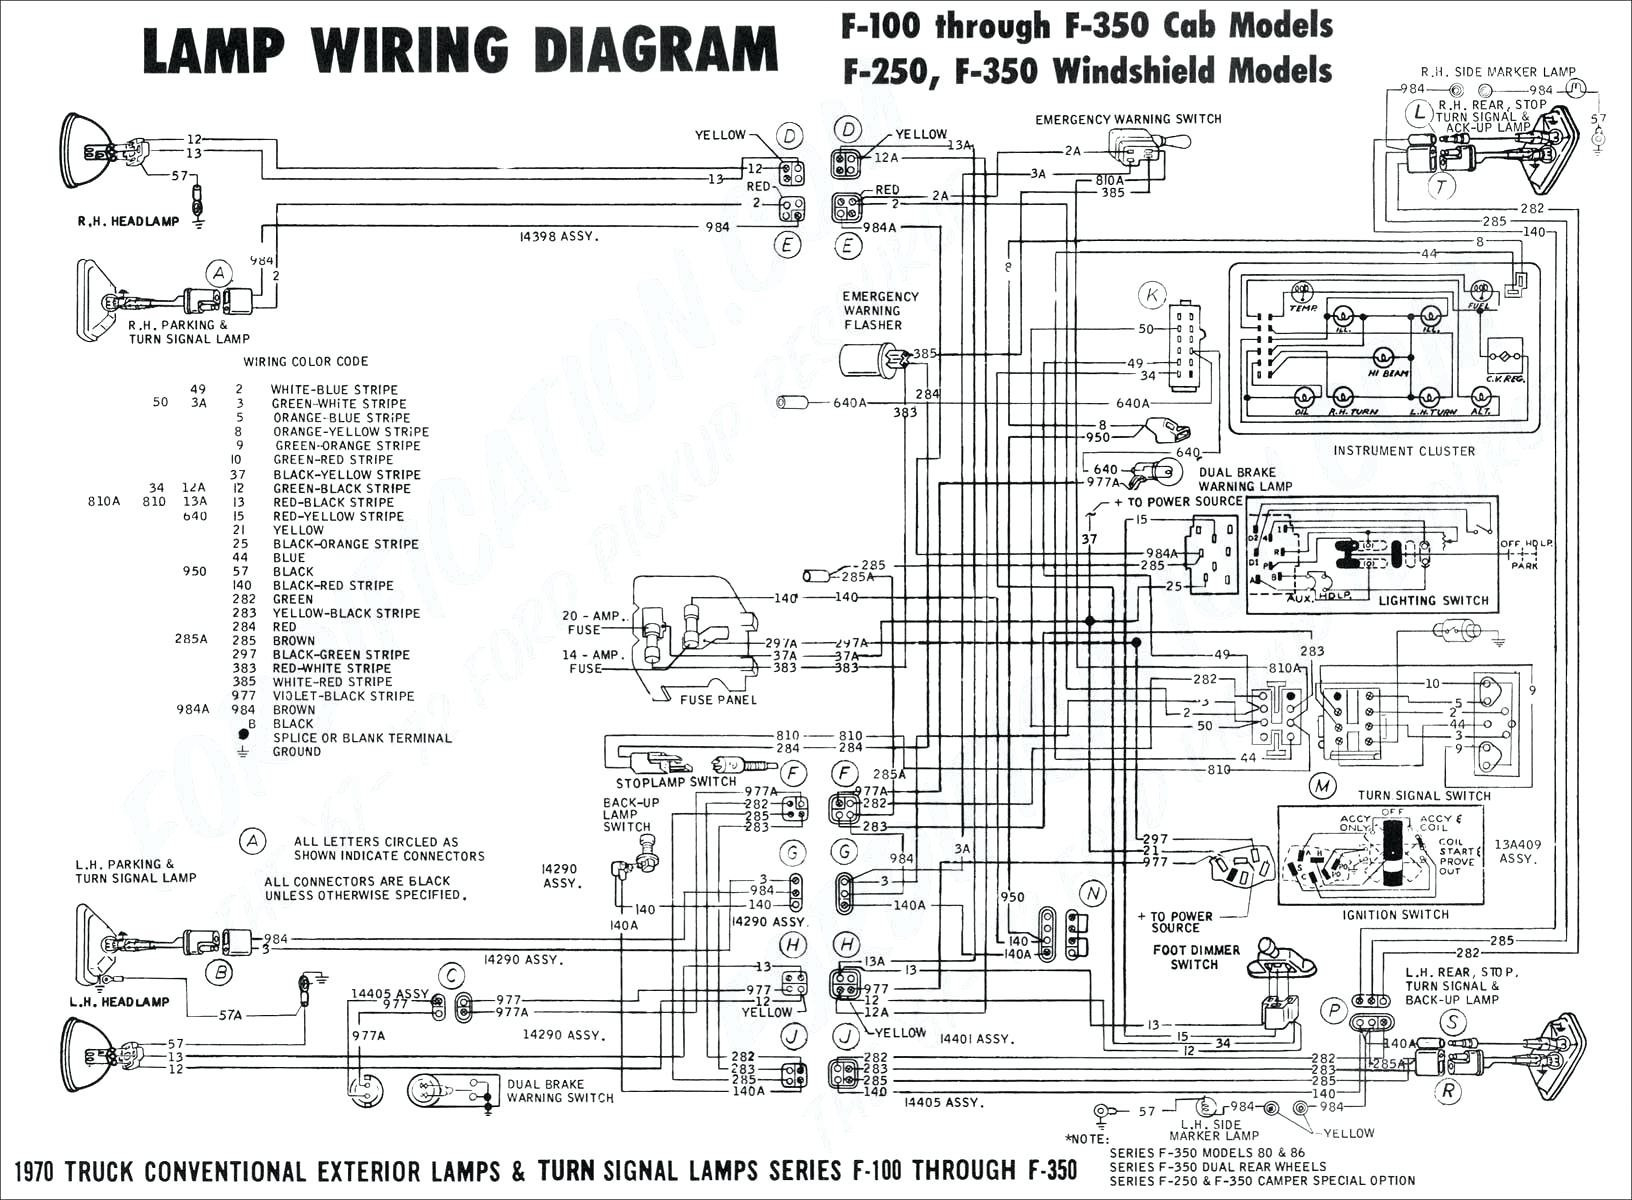 tail light wiring diagram ford f150 Download-Wiring Diagram for Automotive Lights New Stop Turn Tail Light Wiring Diagram Beautiful 1979 ford F150 16-r